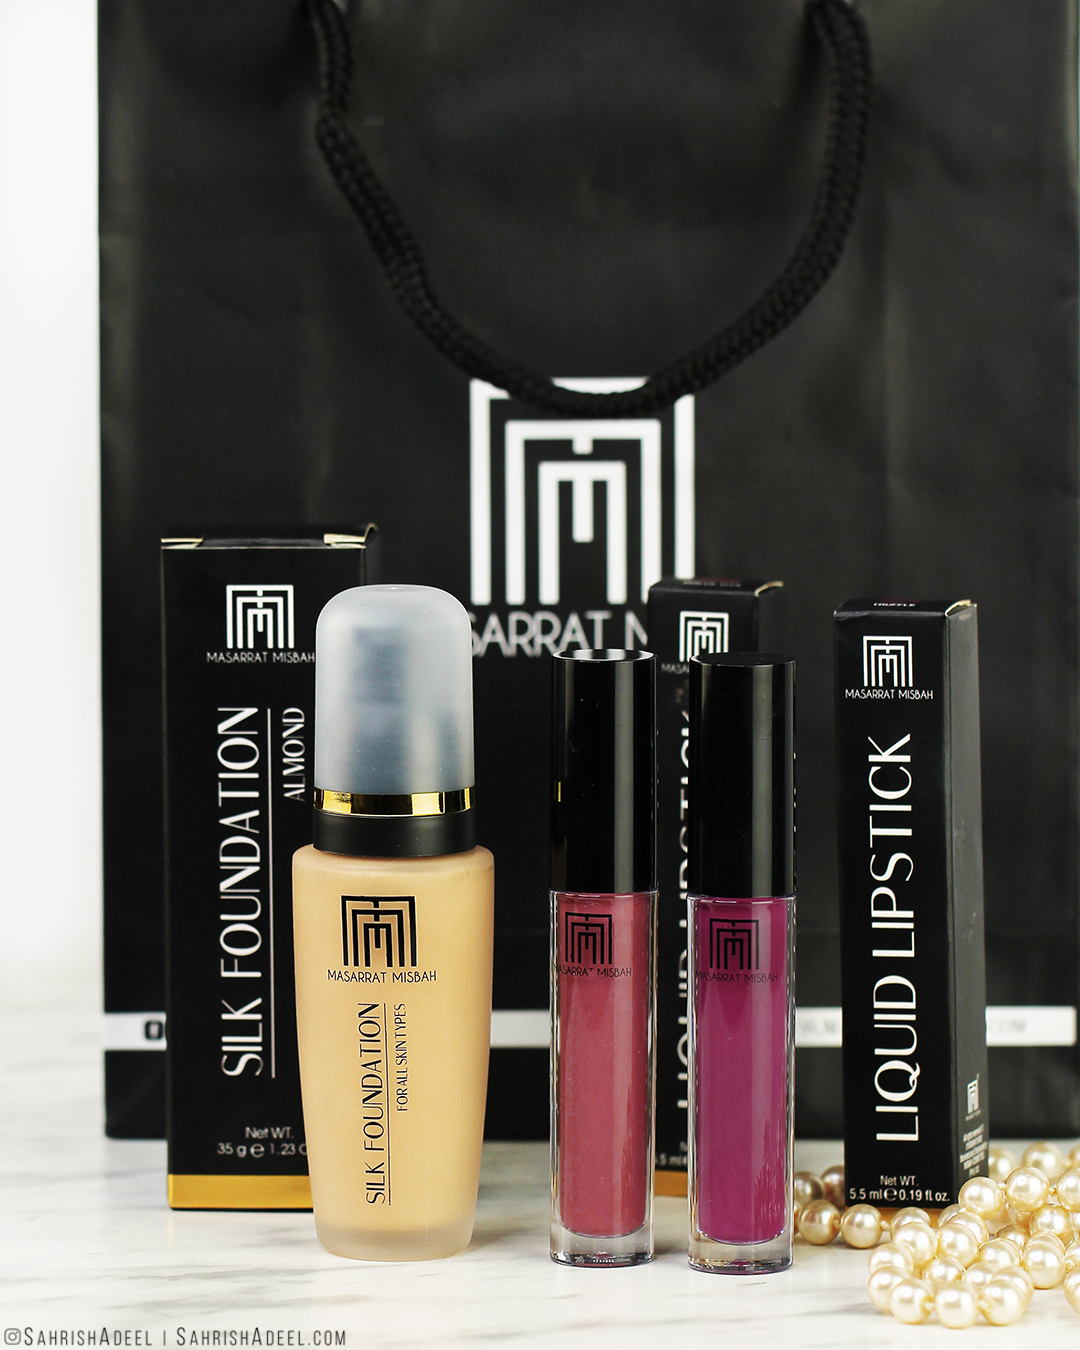 Silk Foundation by Masarrat Misbah - Review & Swatch